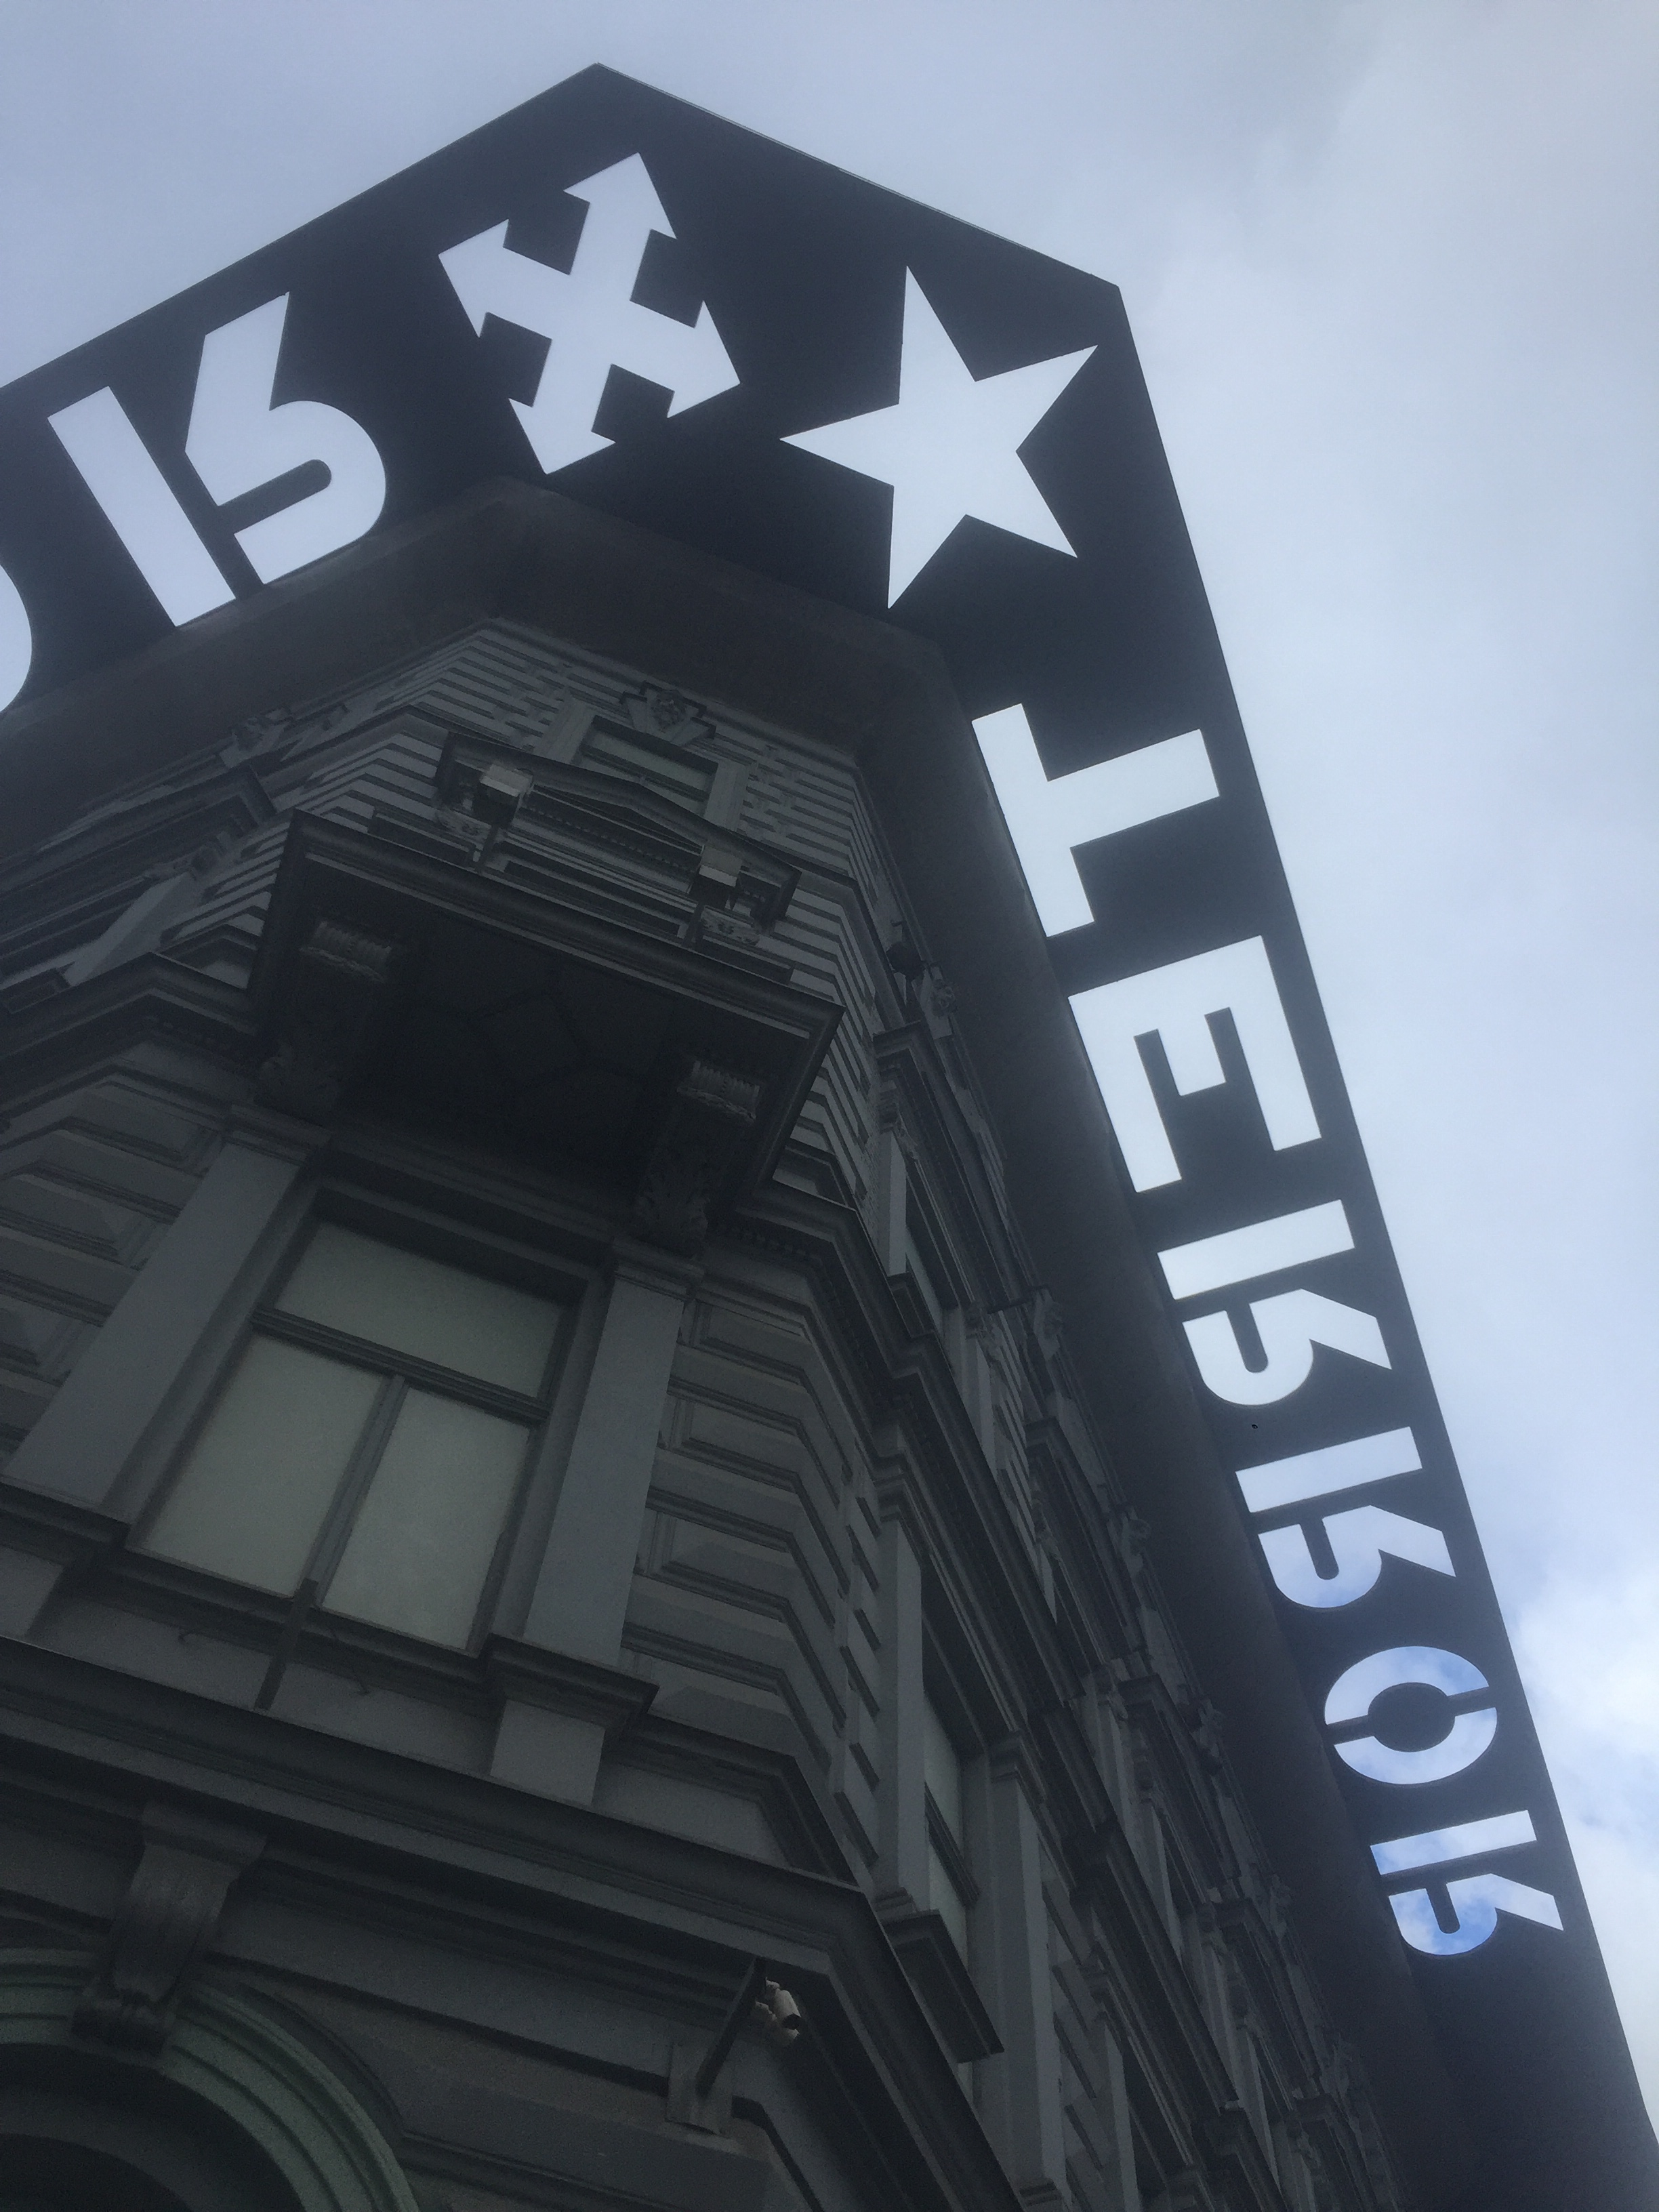 House of terror in Budapest outside view.